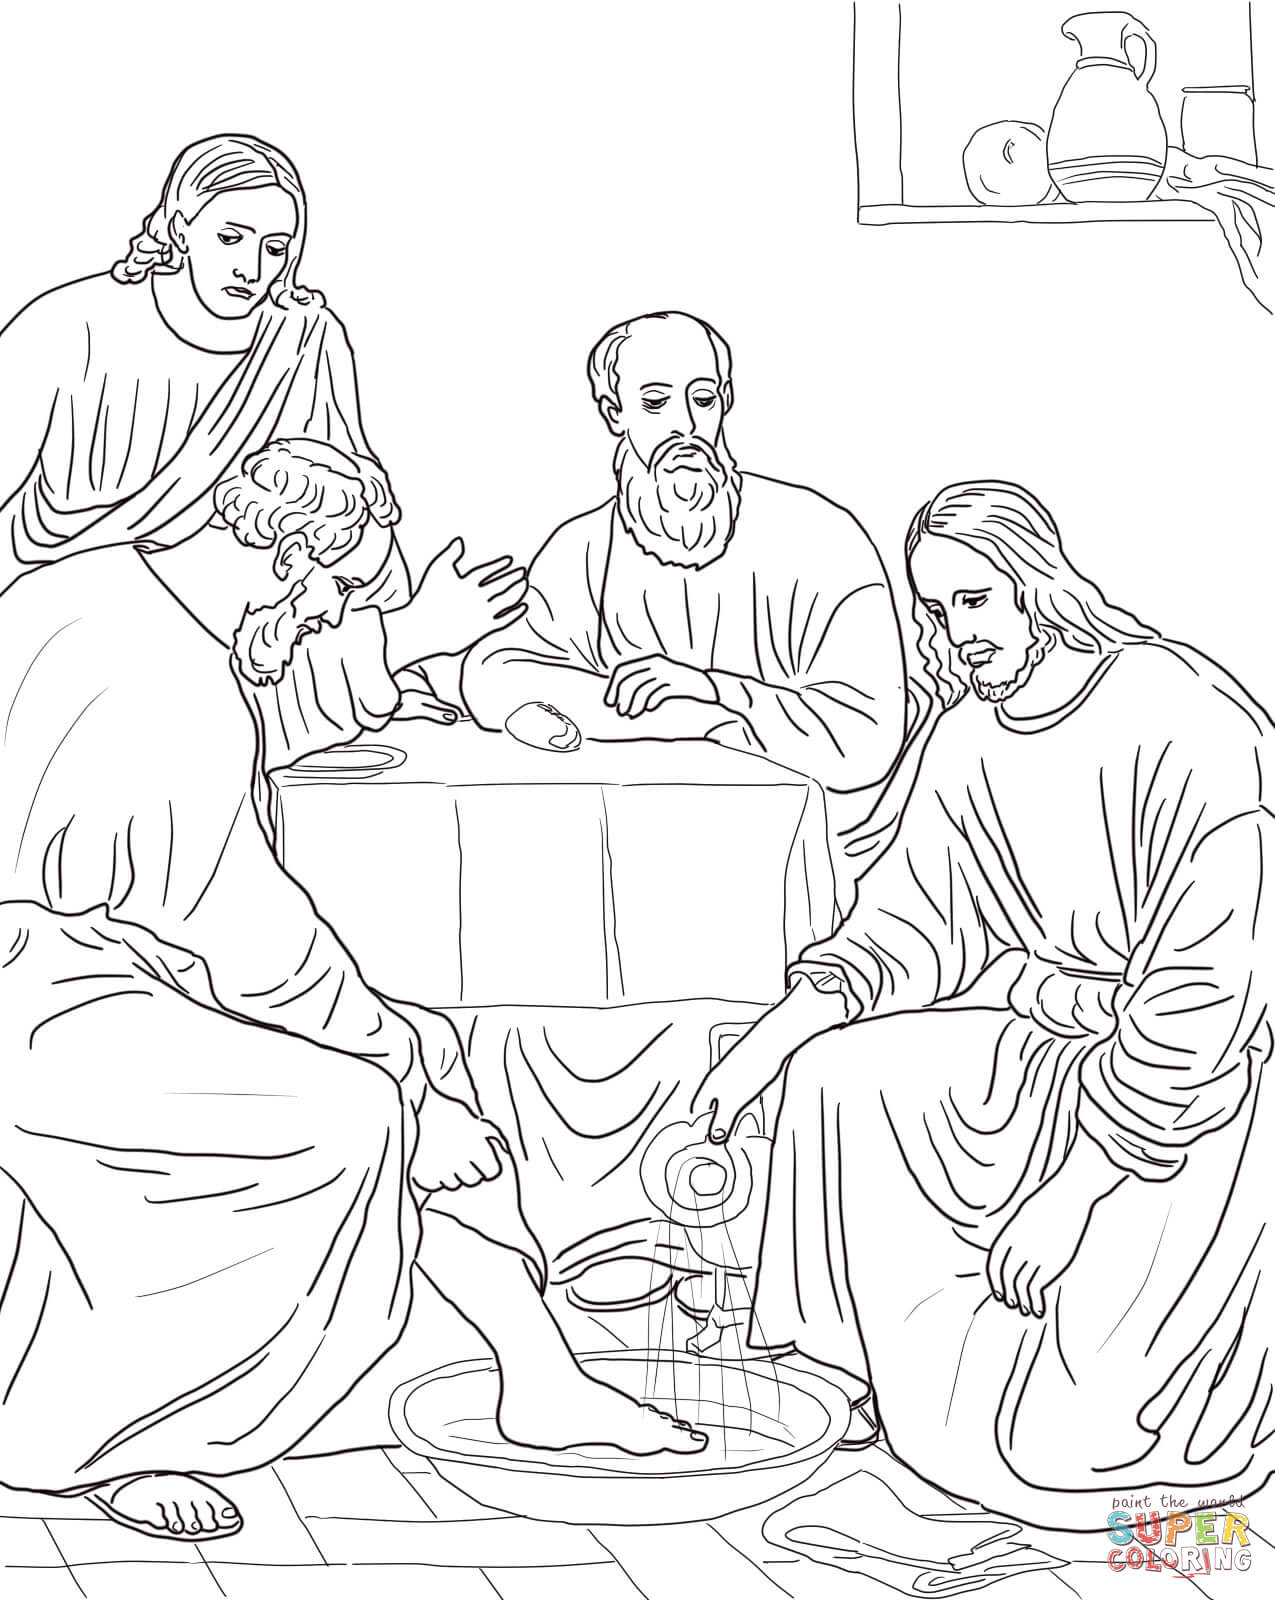 Jesus Washes The Disciples Feet Coloring Page - Coloring Home